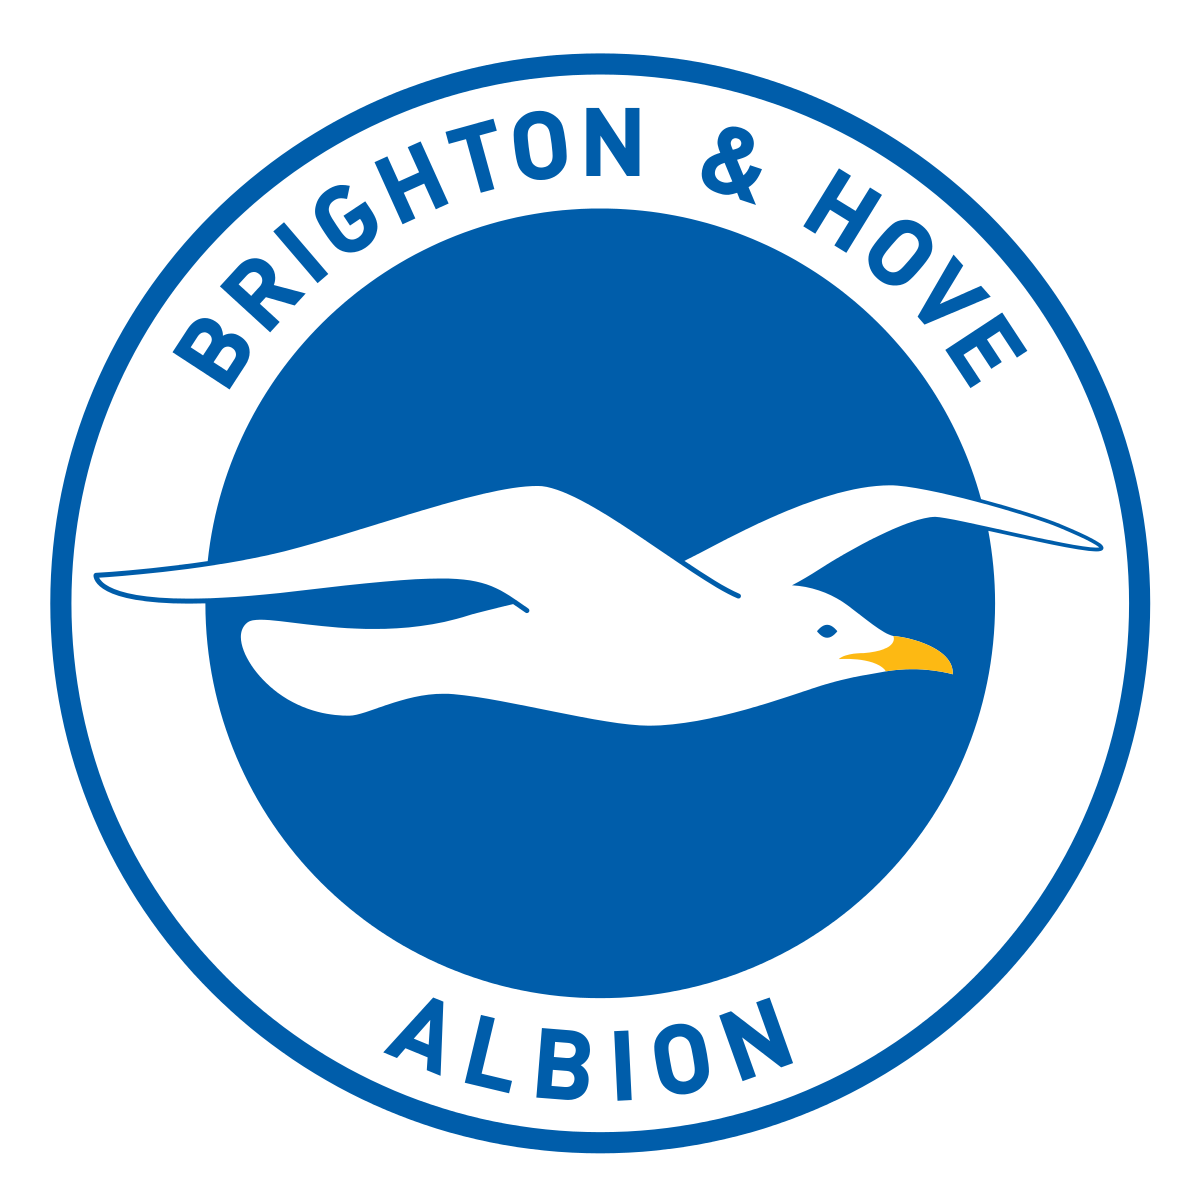 Brighton (u18) team logo